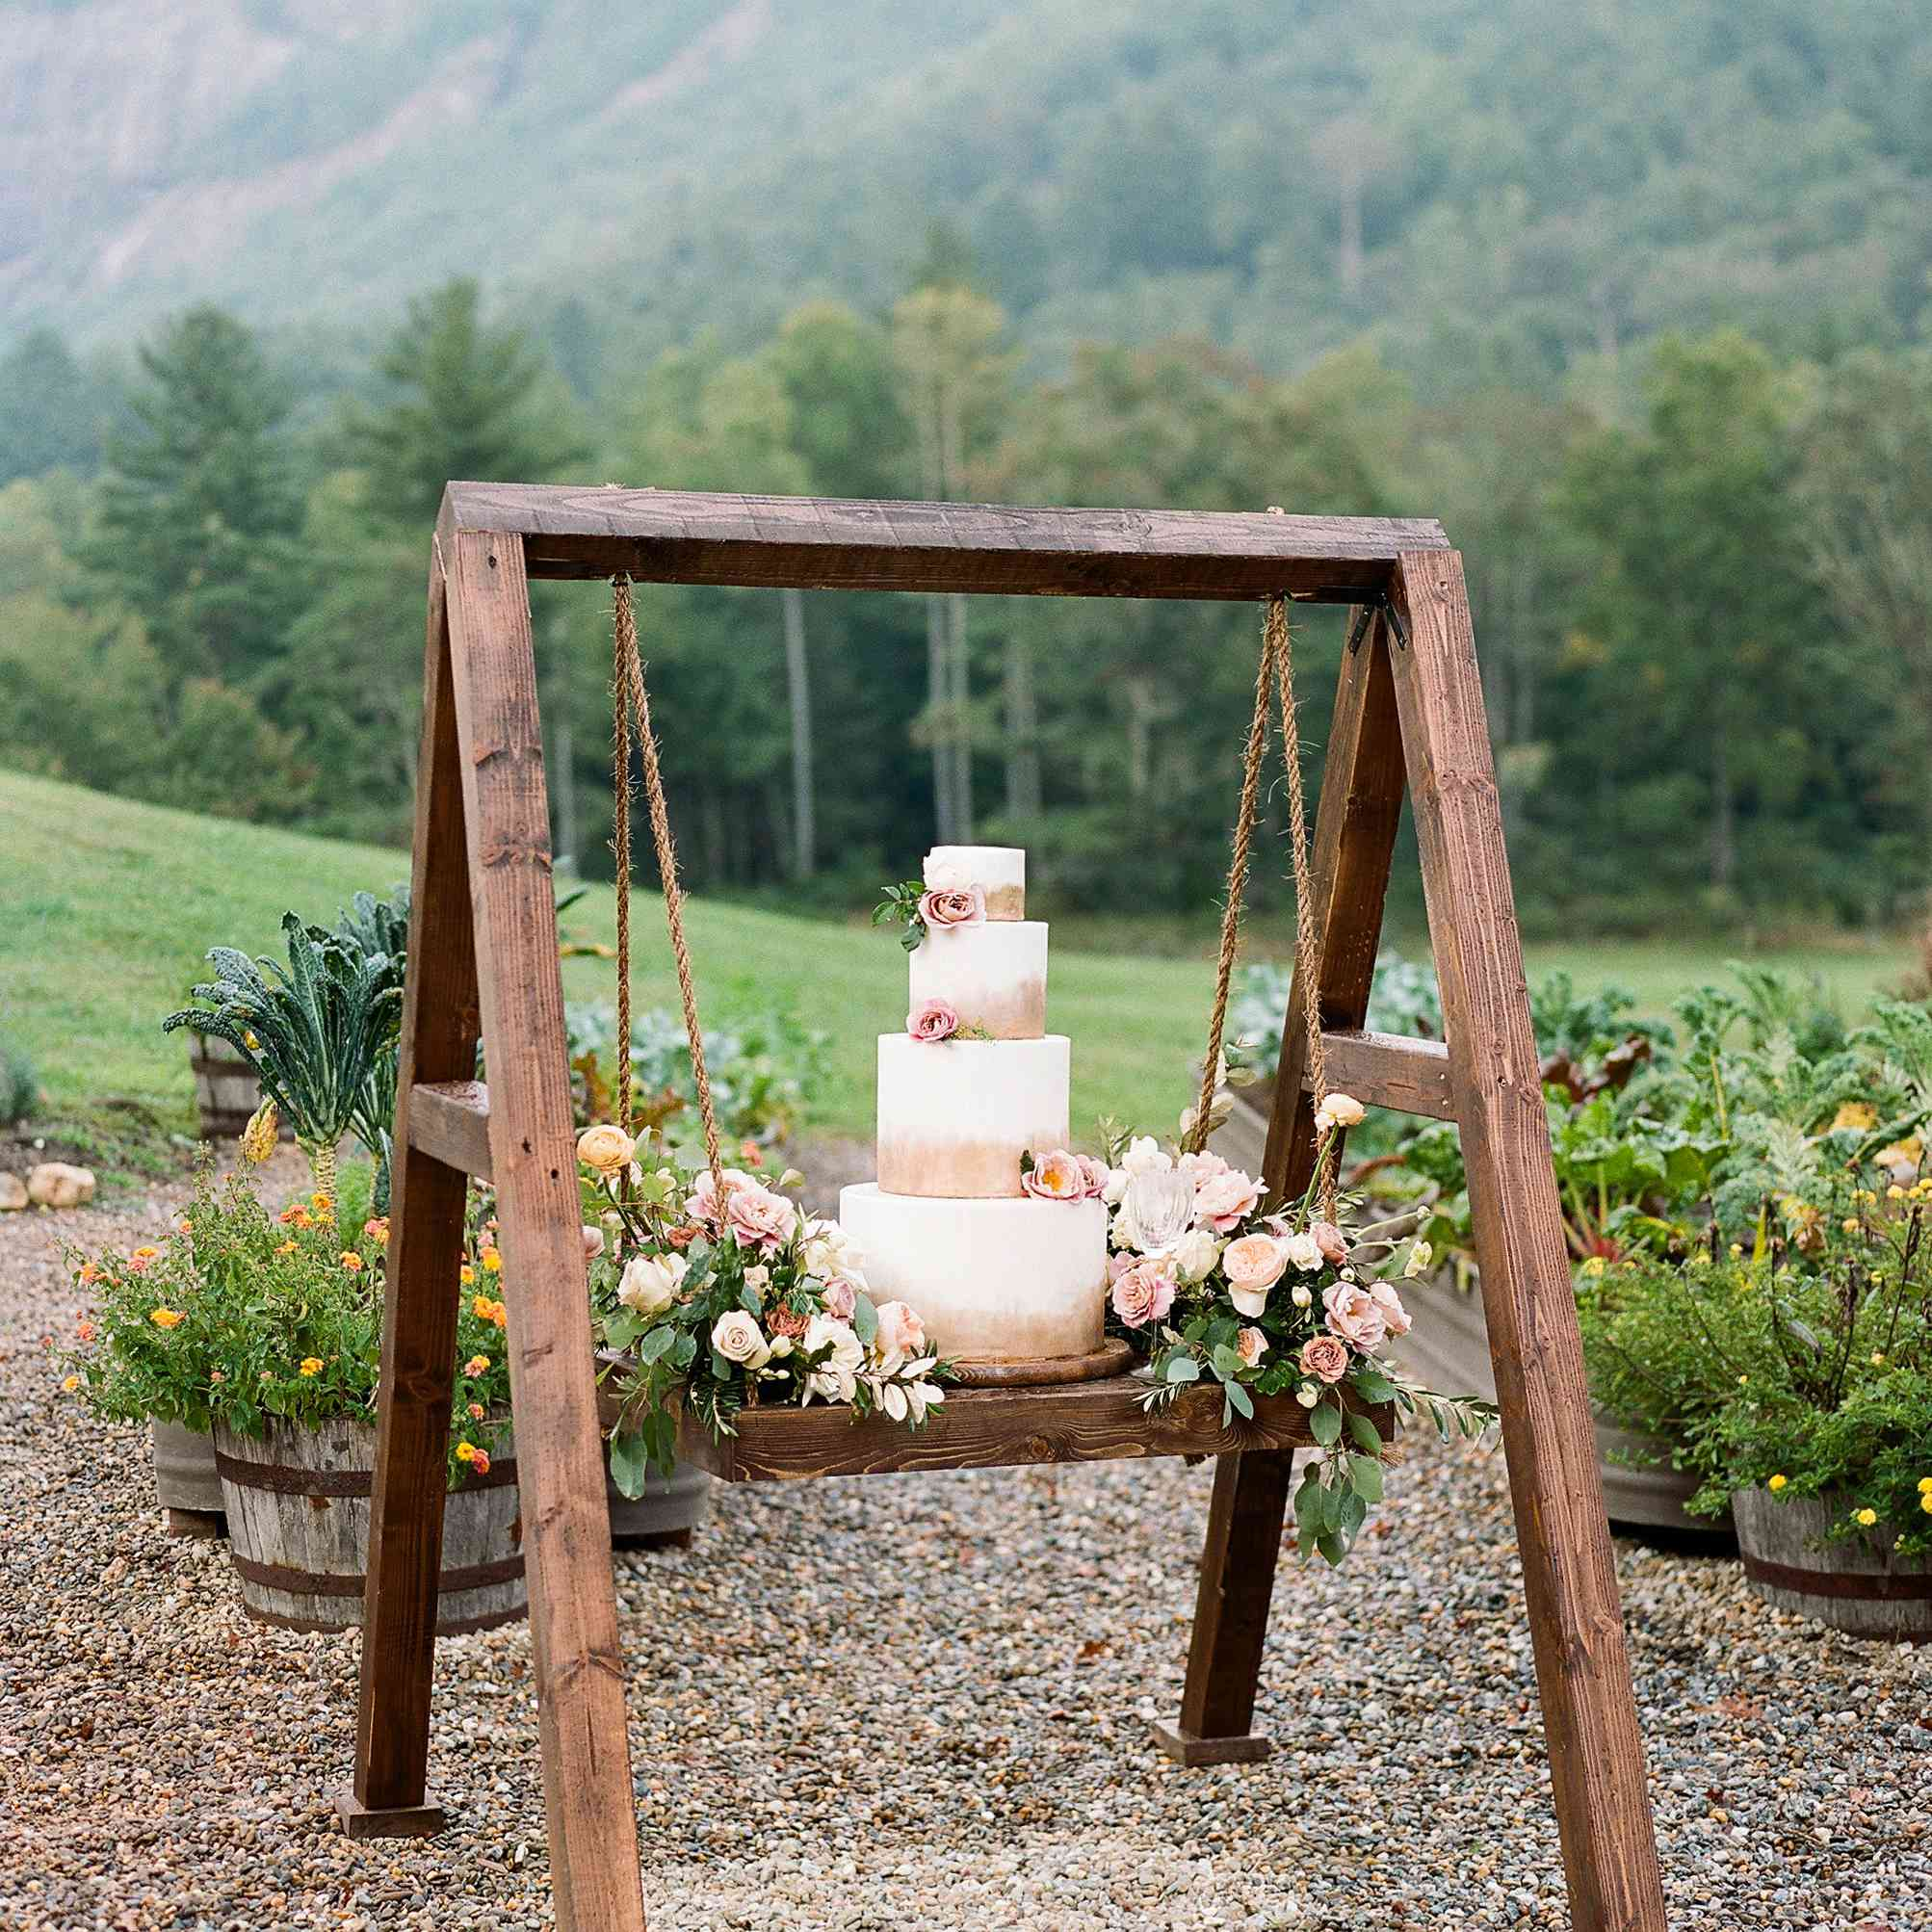 Four-tiered white wedding cake with brushed gold accents displayed on a wooden swing